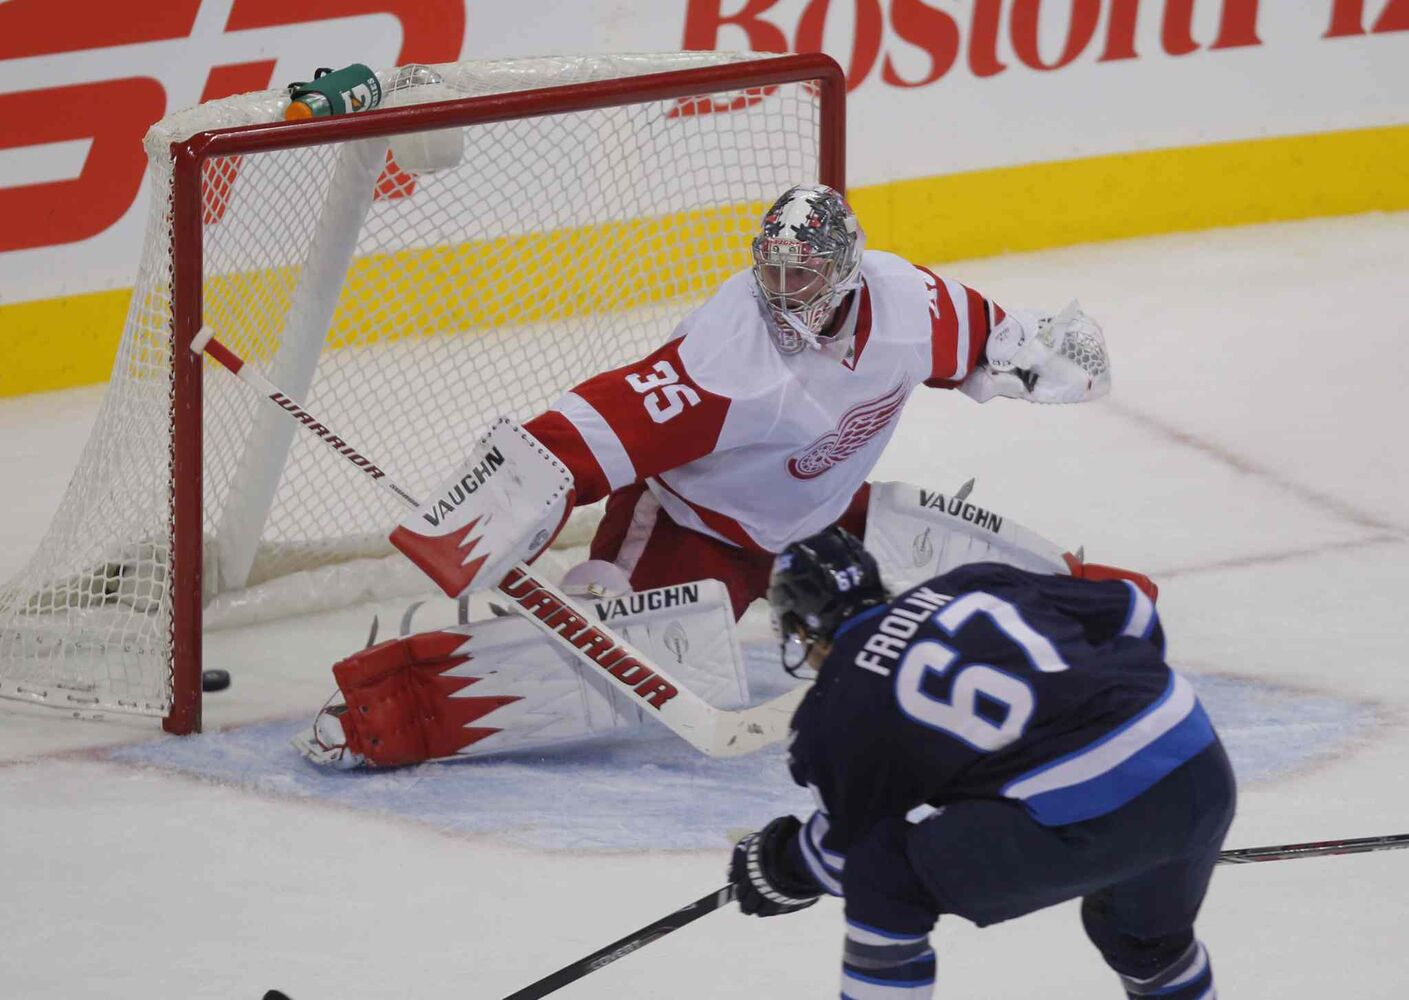 Winnipeg Jets forward Michael Frolik scores on Detroit Red Wings goalie Jimmy Howard.